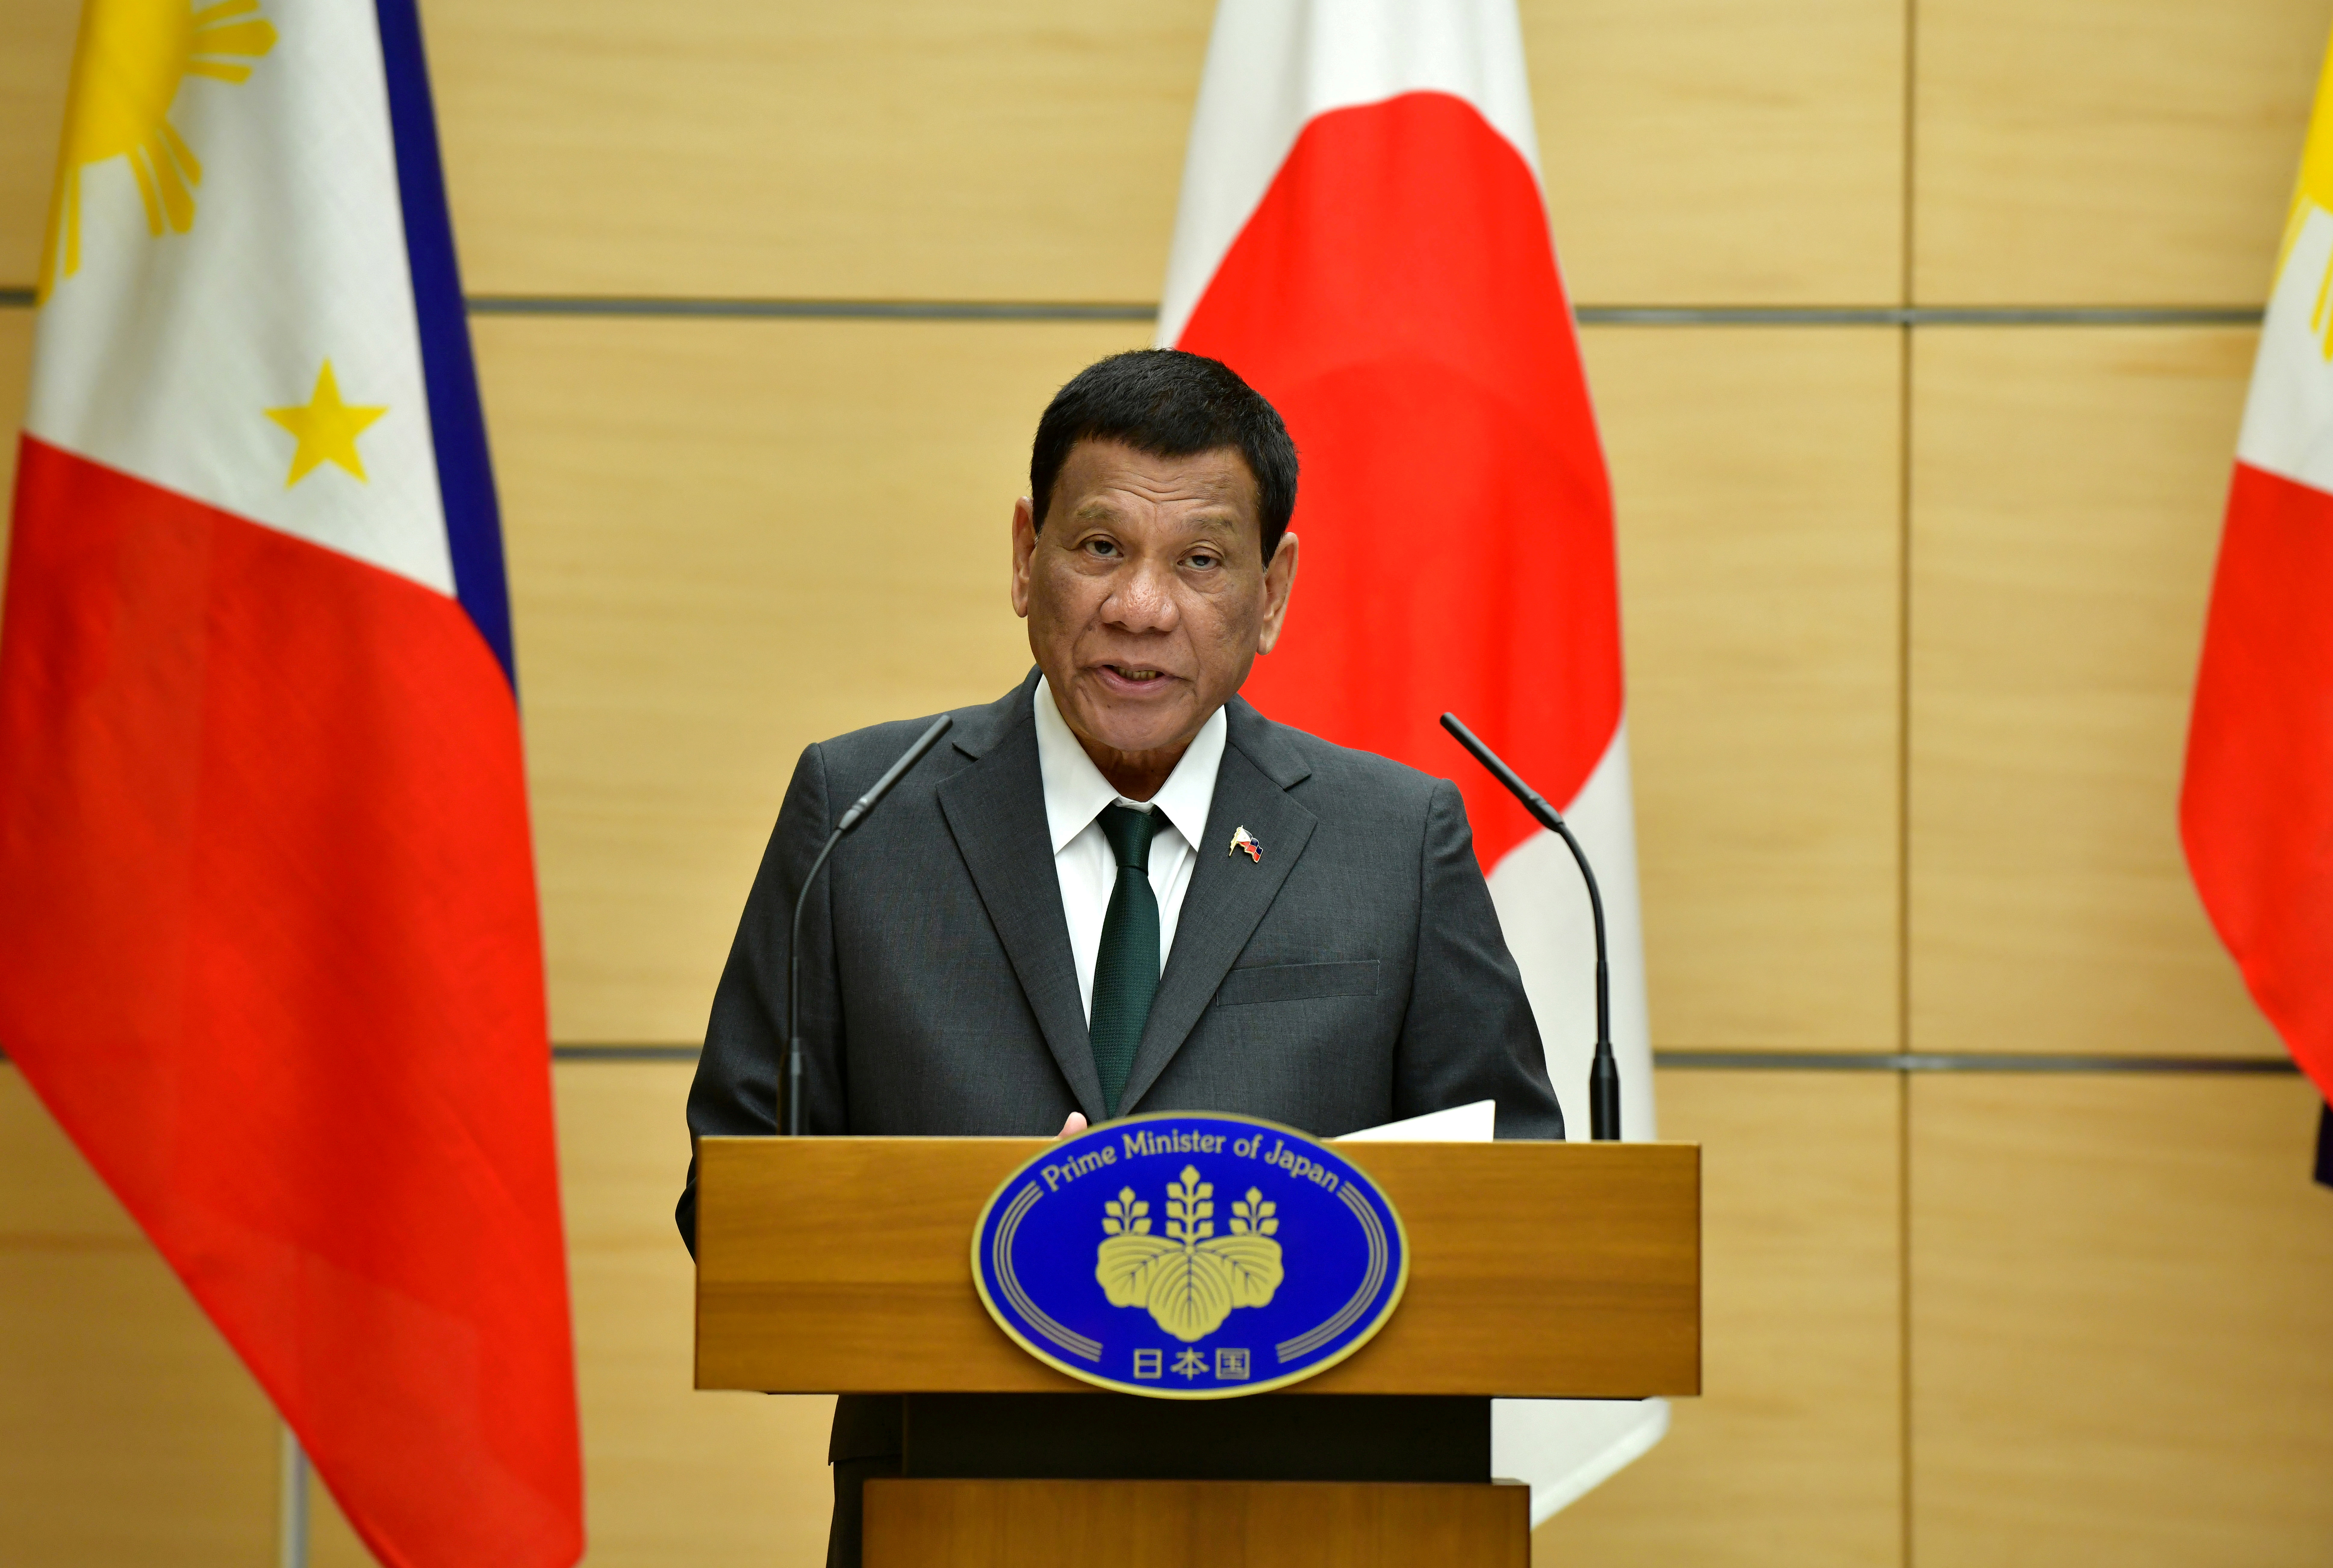 Philippine President Rodrigo Duterte delivers a speech during their joint press statement with Japan's Prime Minister Shinzo Abe (not pictured) at Abe's official residence in Tokyo, Japan May 31, 2019.  Kazuhiro Nogi /Pool via Reuters